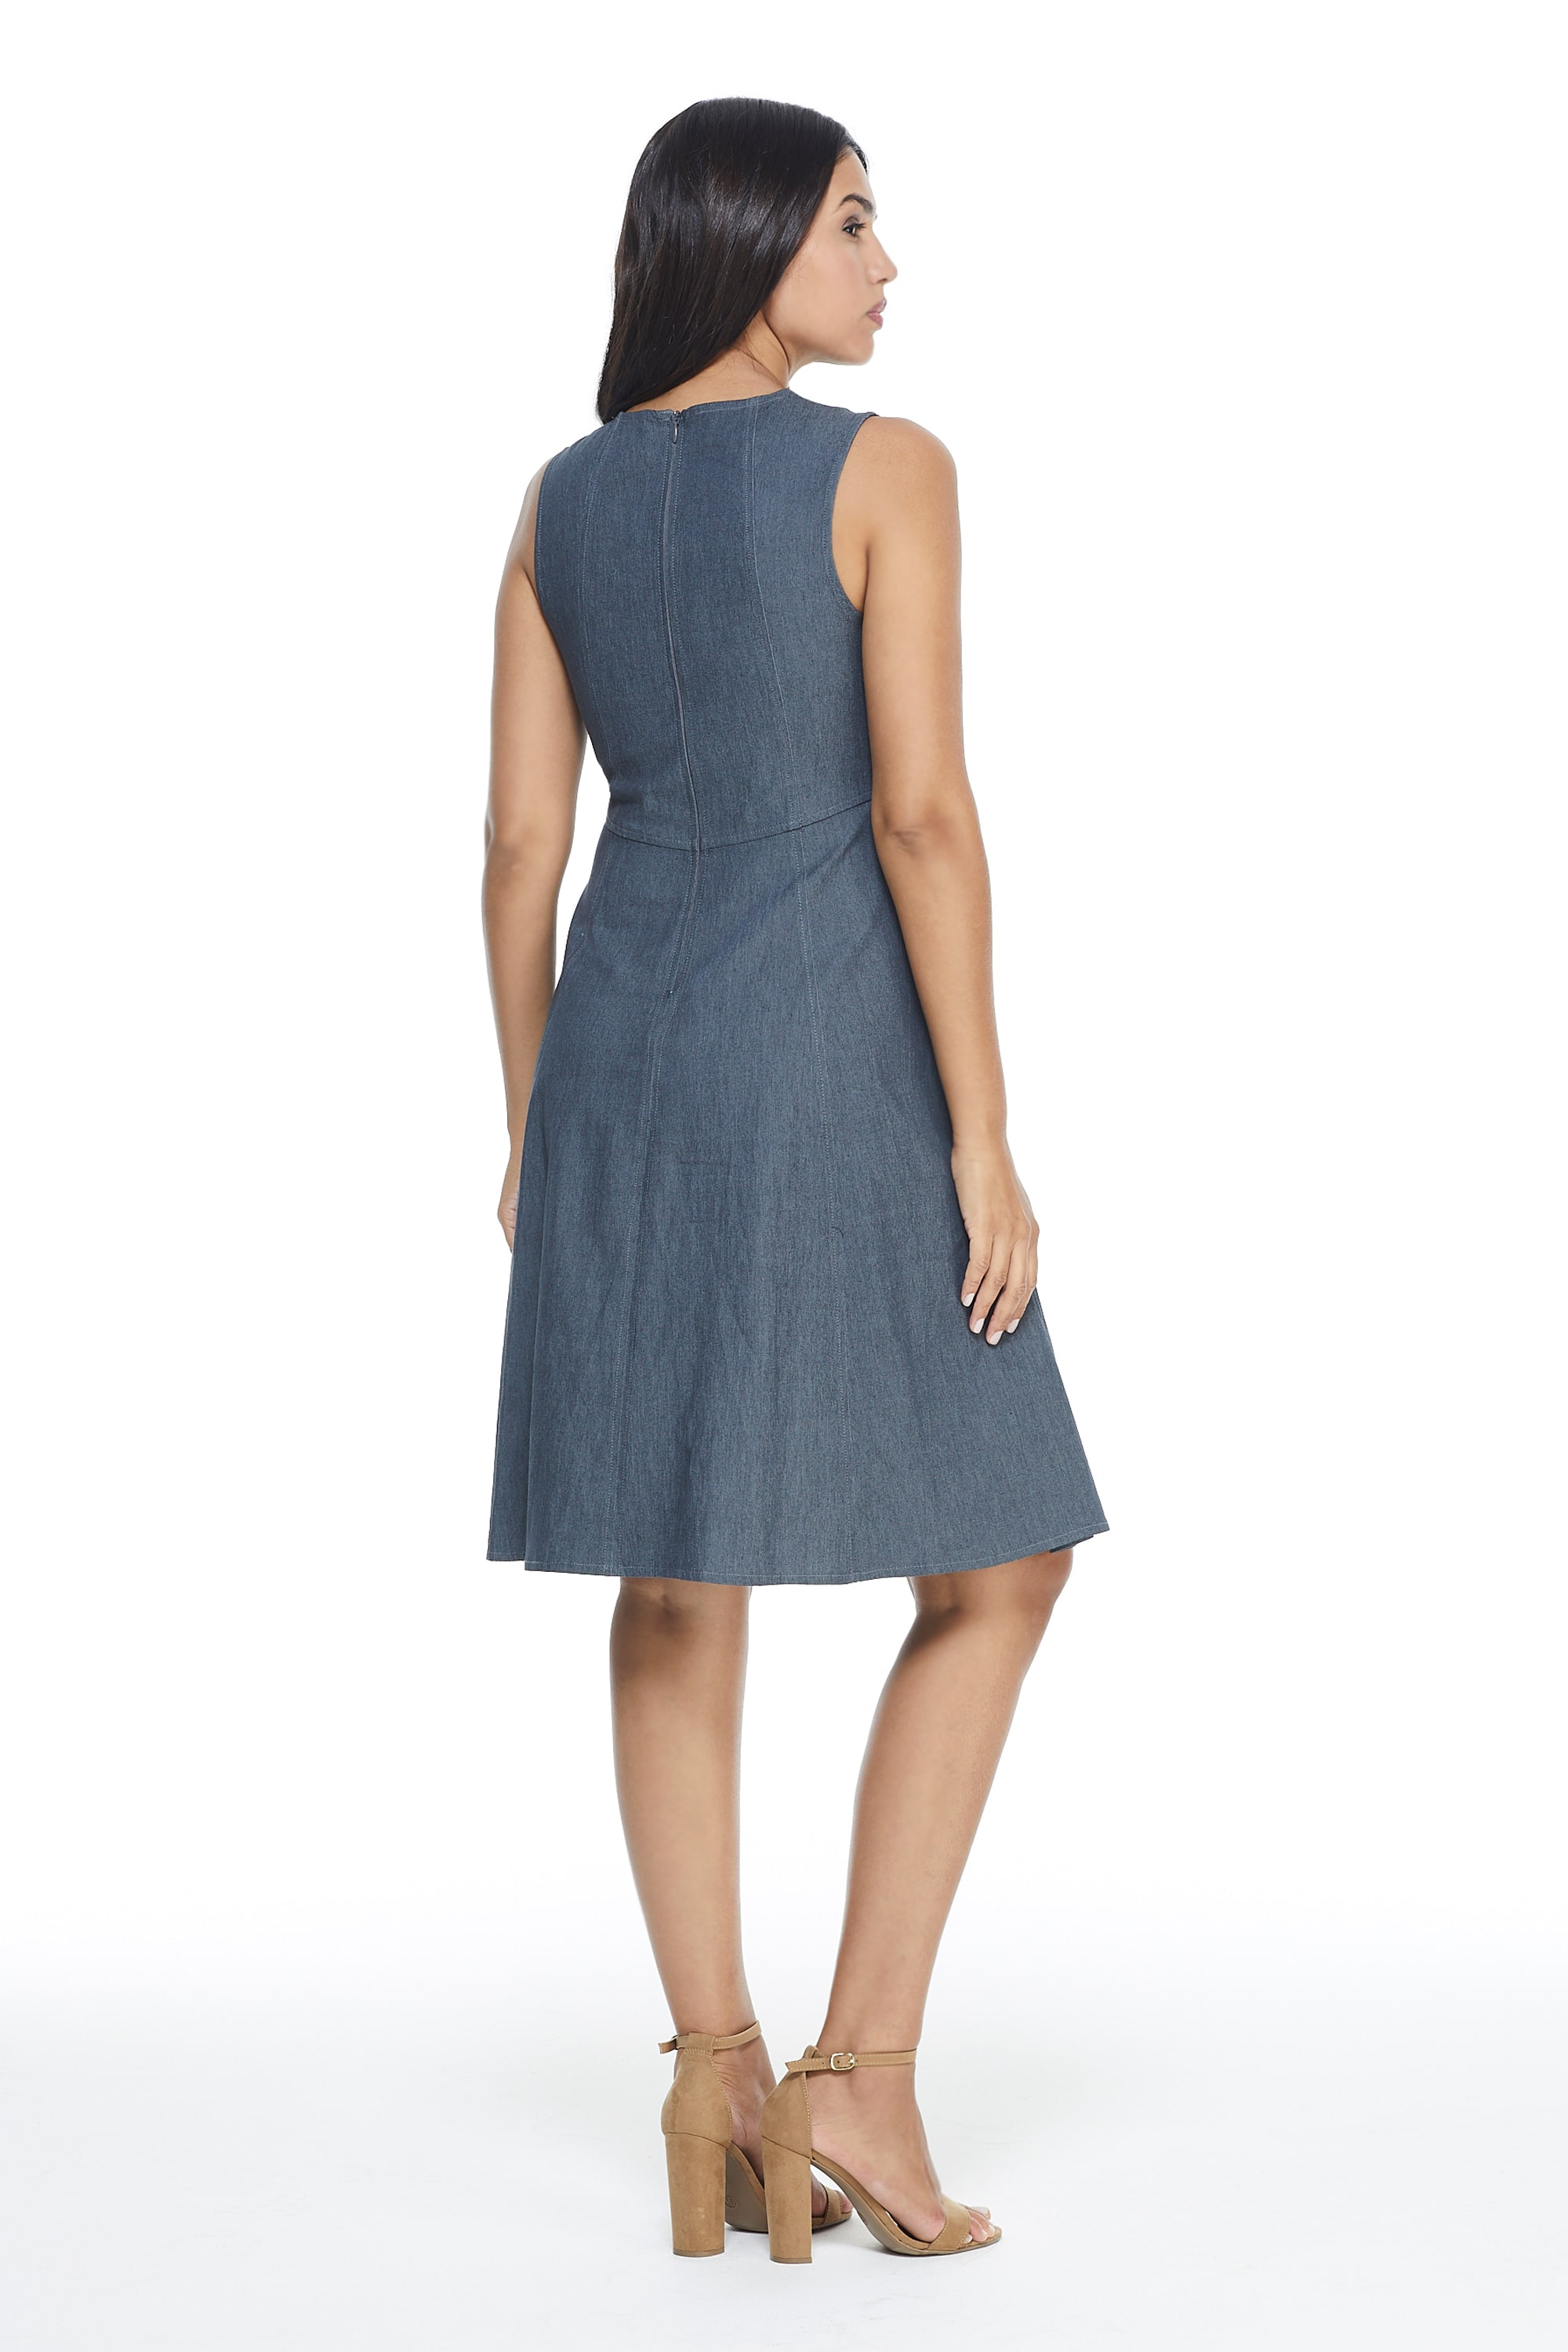 Denim Fit & Flare Dress - Denim - Back